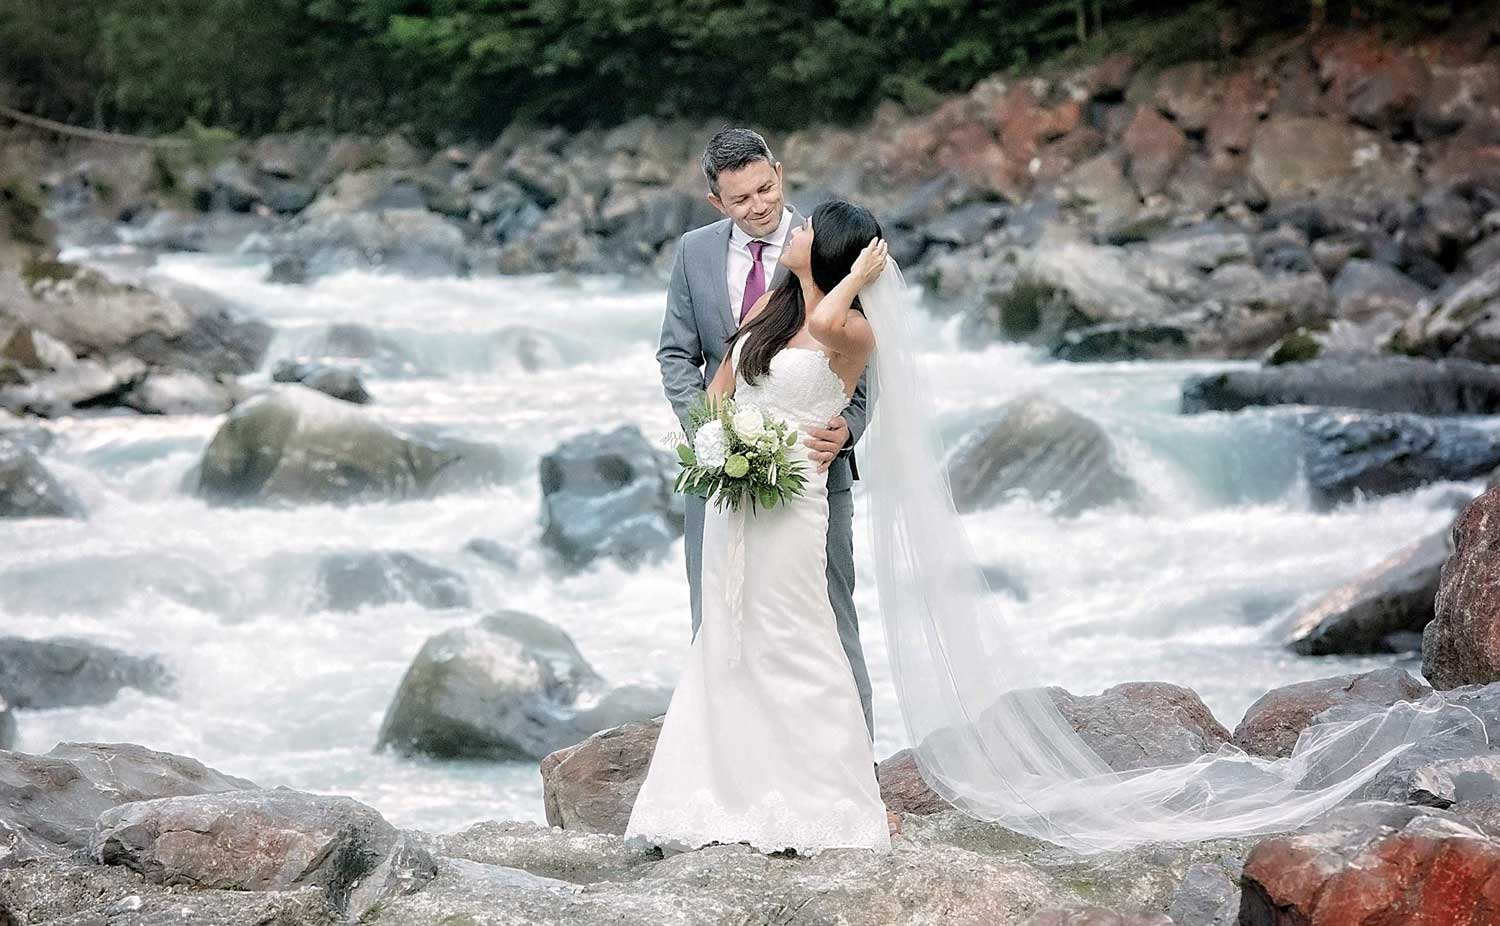 Bridal photo shoot in Interlaken